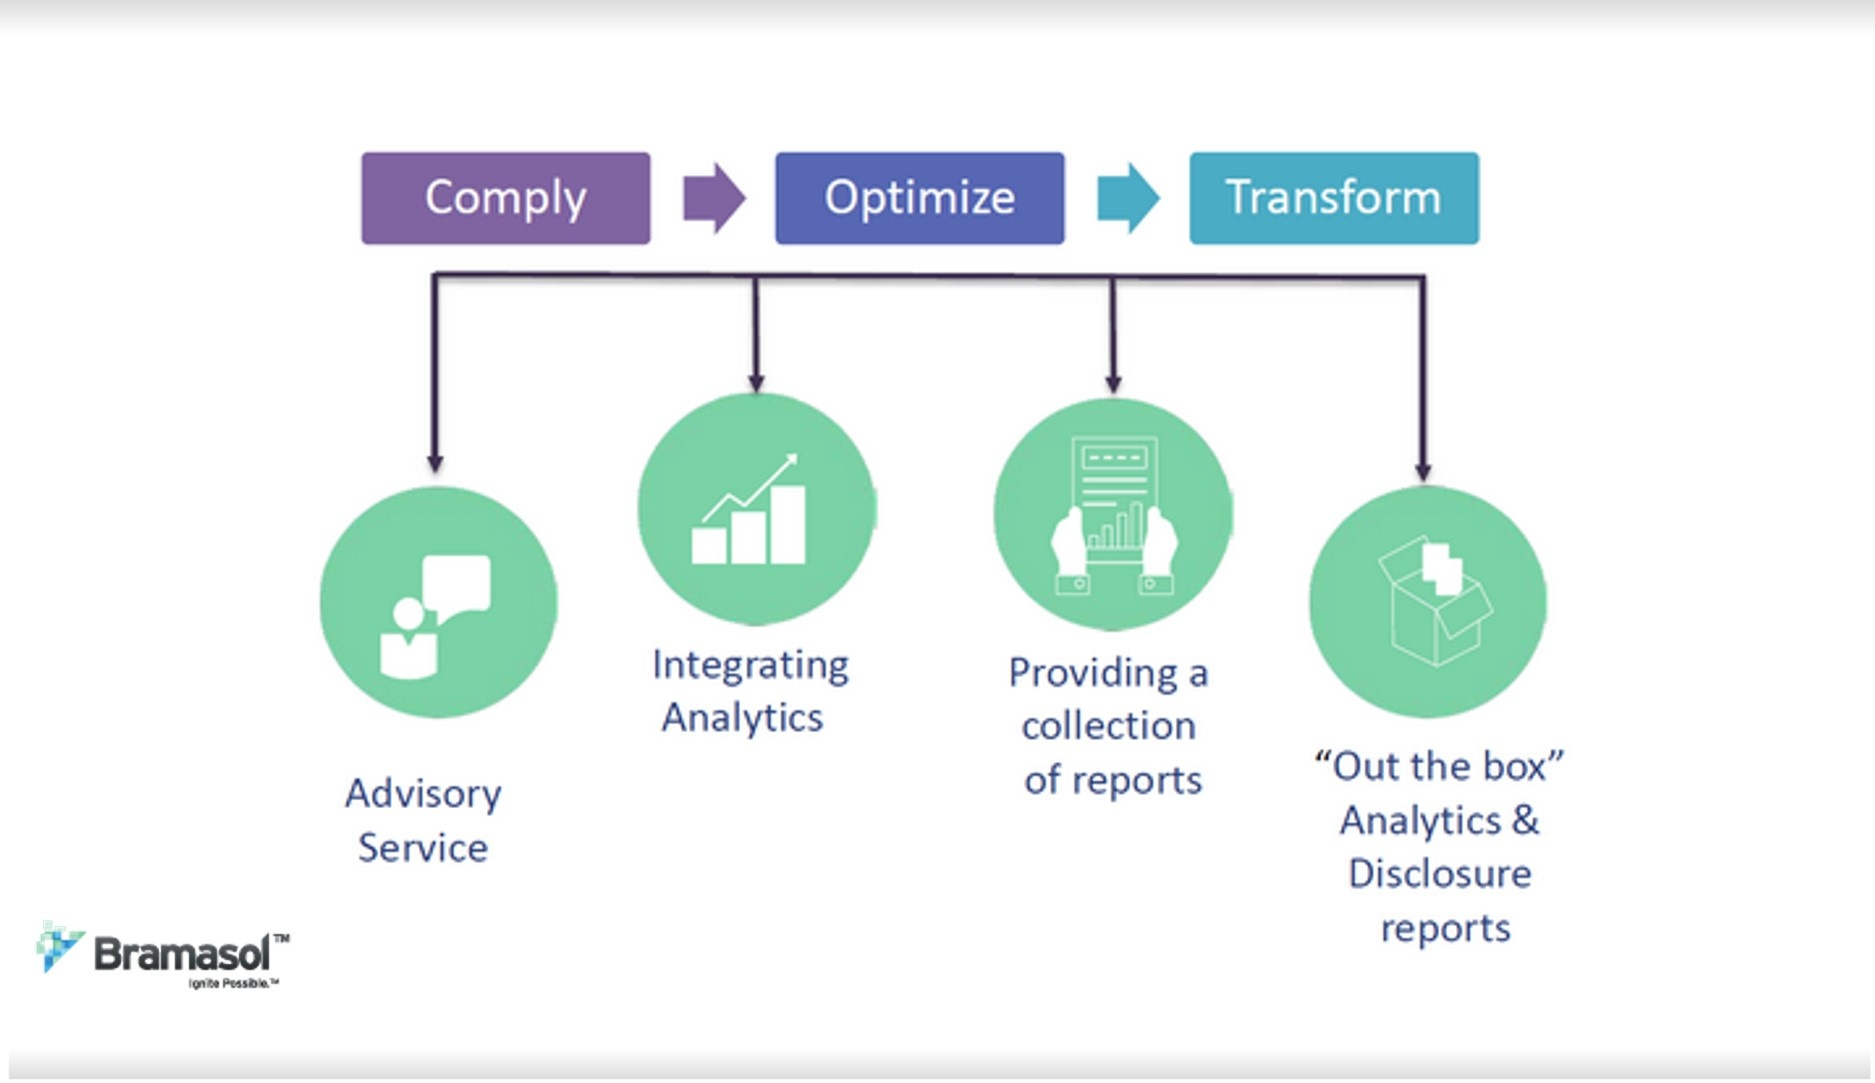 Comply-Optimize-Transform